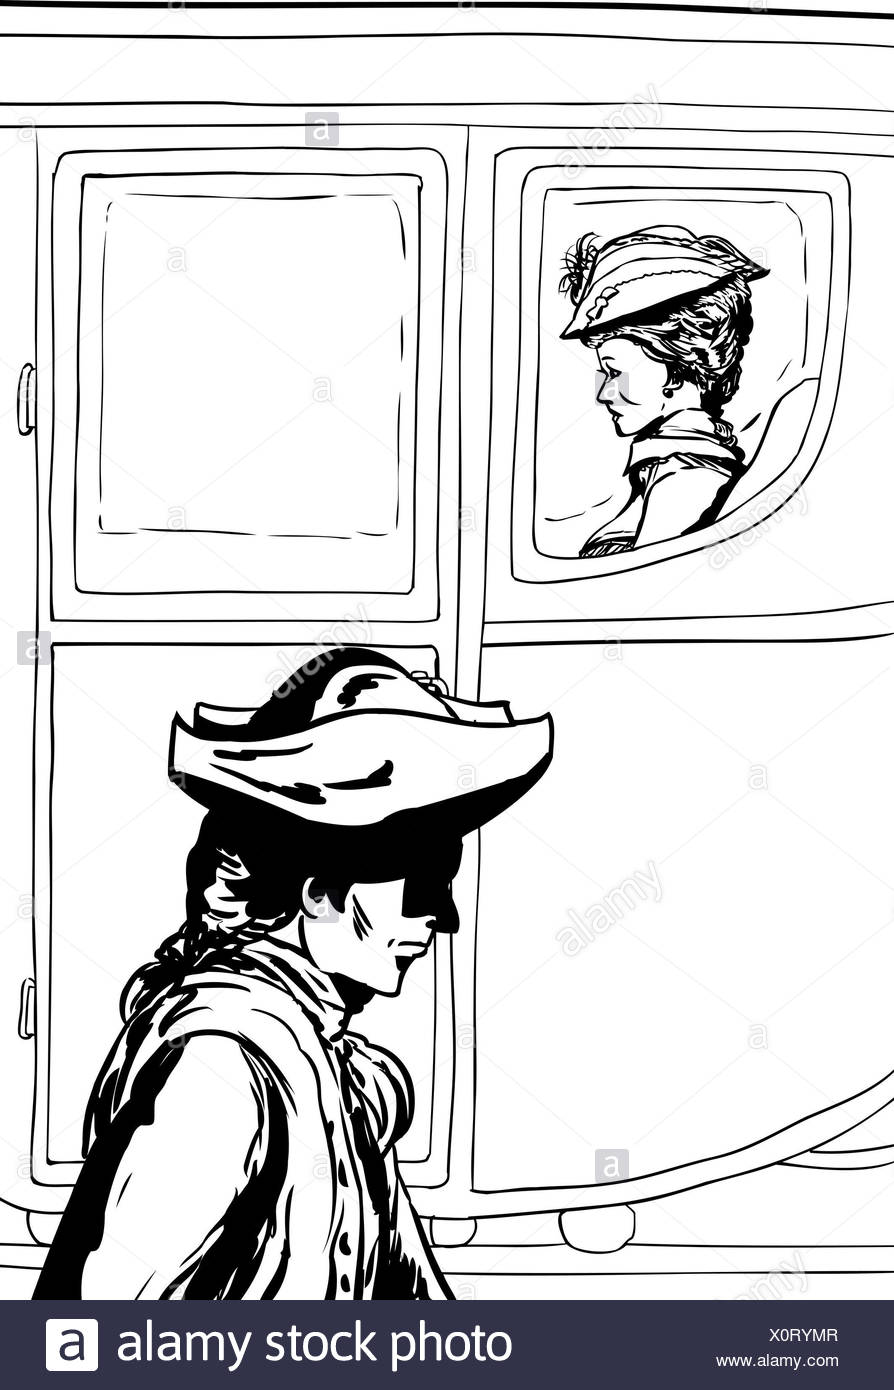 Outline of man in tricorn hat walking past rich carriage passenger - Stock Image